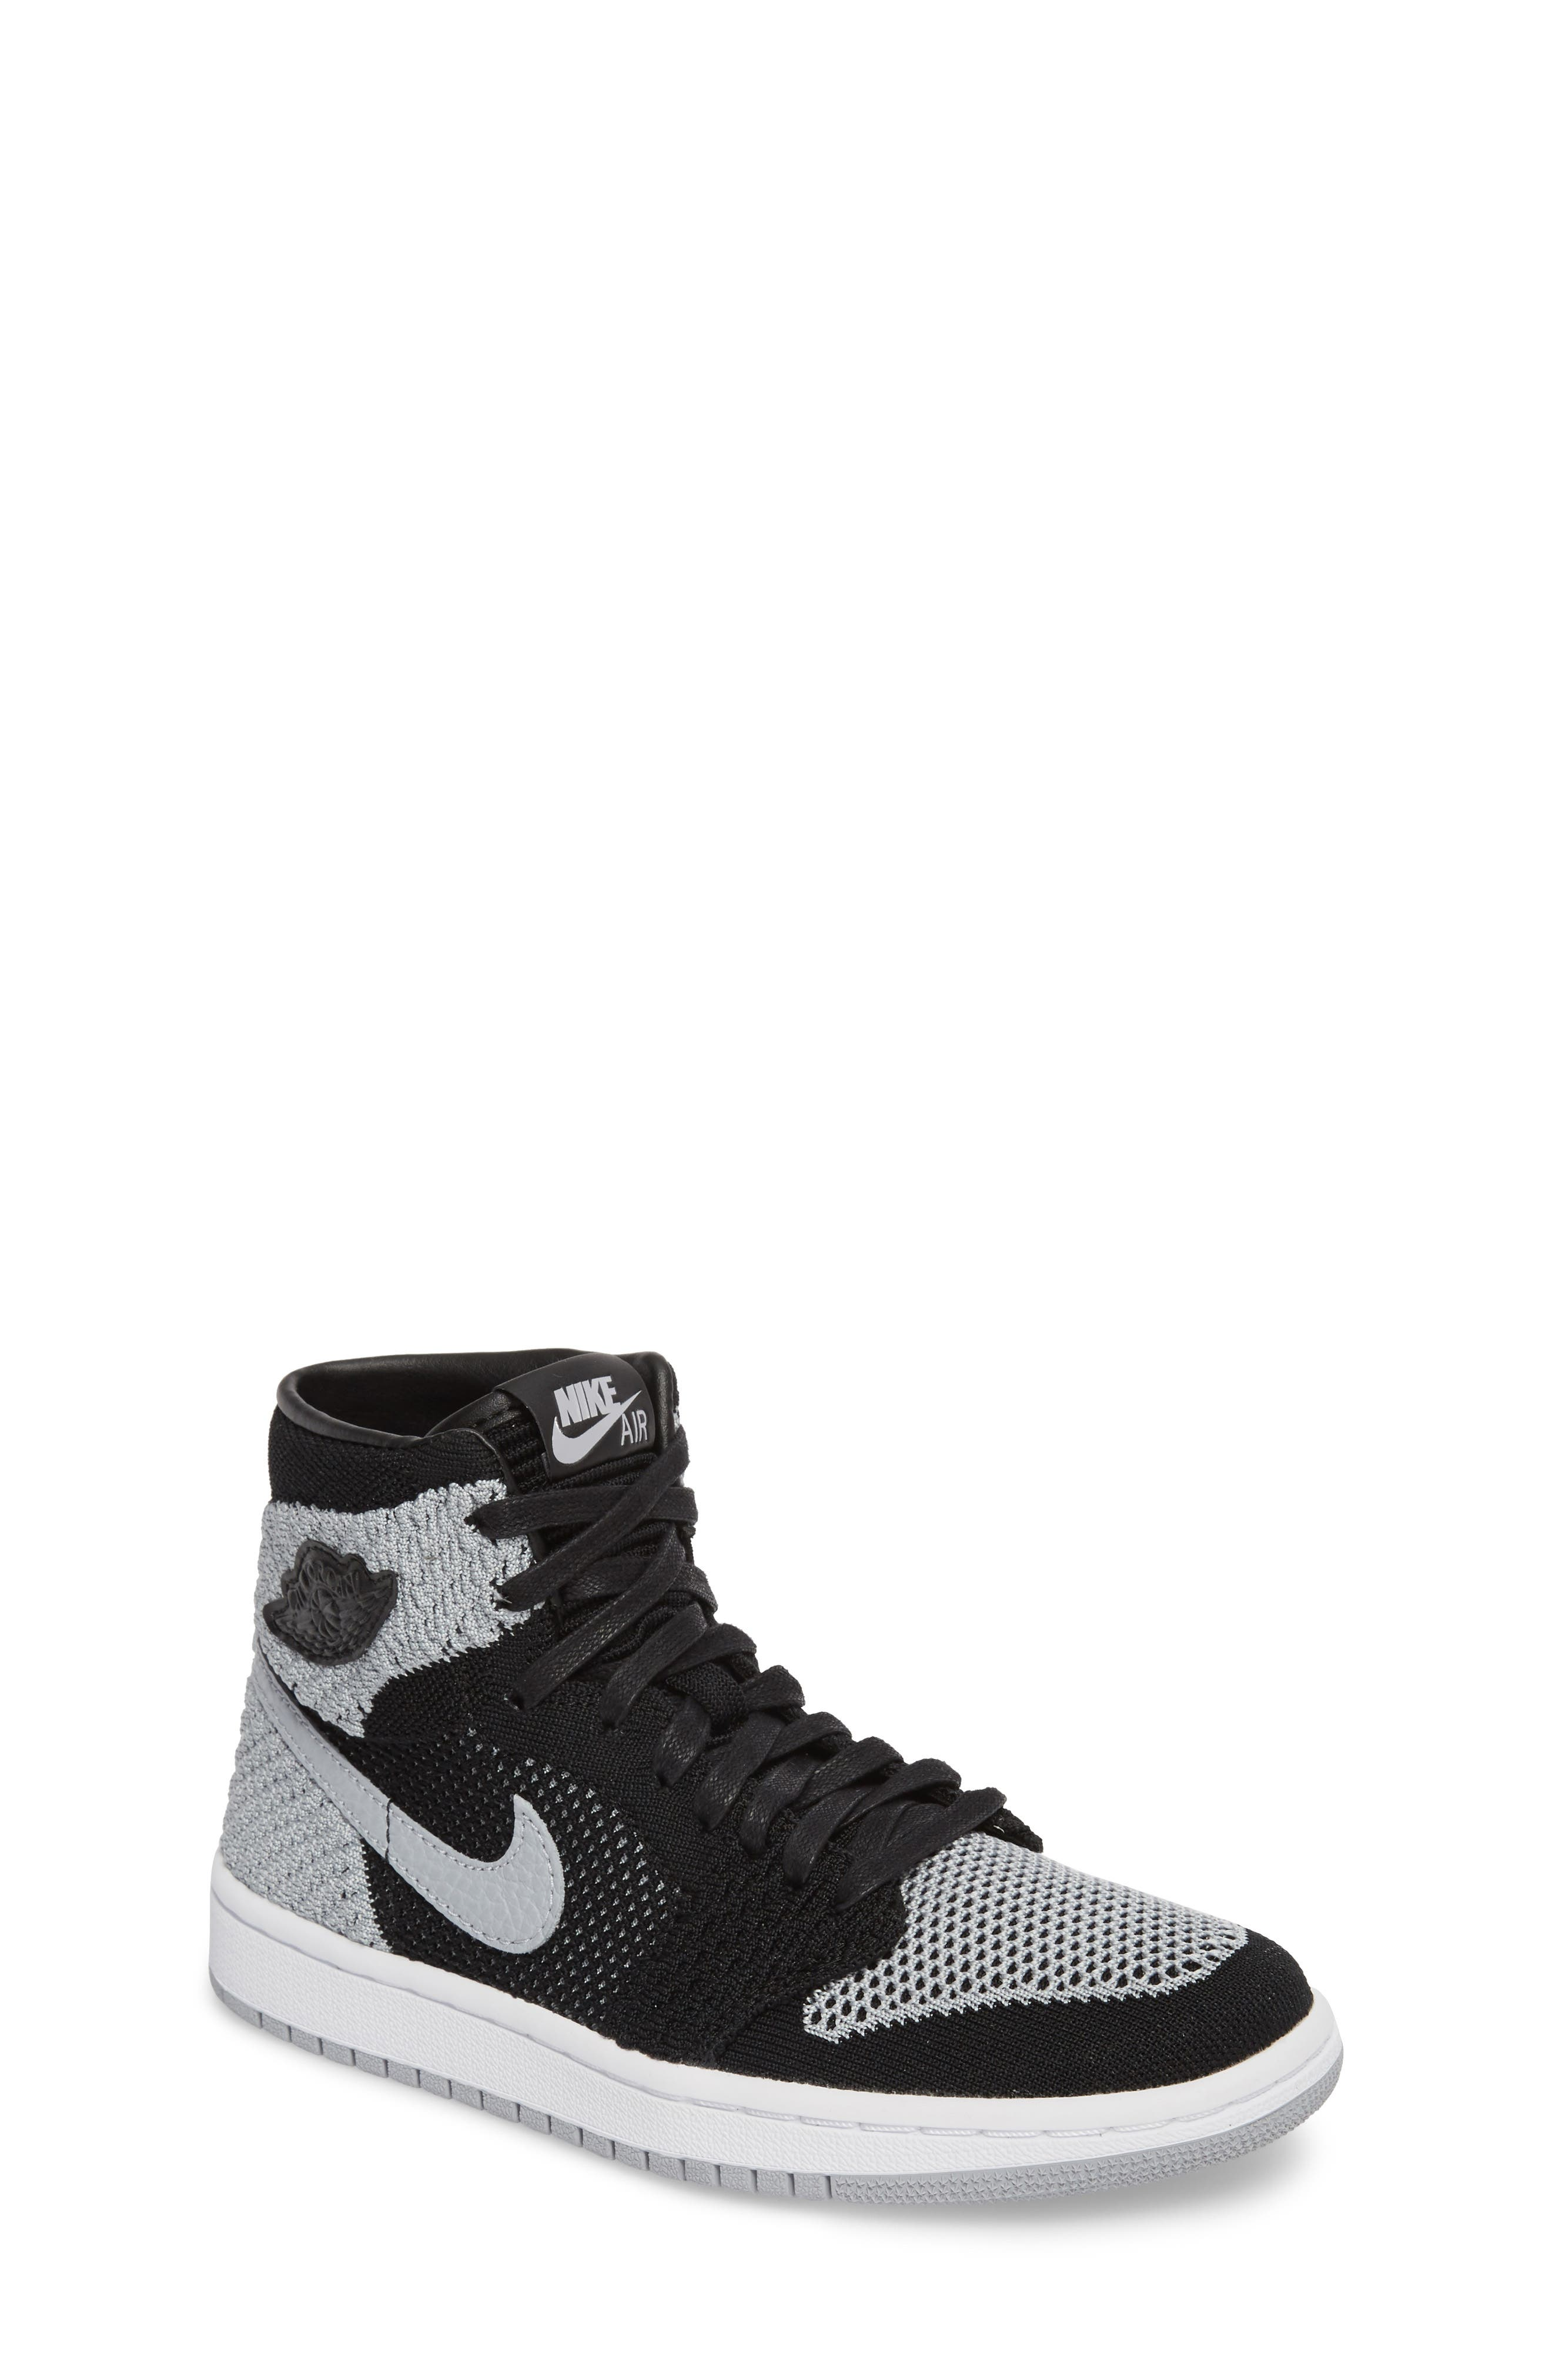 Nike Air Jordan 1 Retro High Flyknit Sneaker,                             Main thumbnail 1, color,                             Black/ Wolf Grey/ White